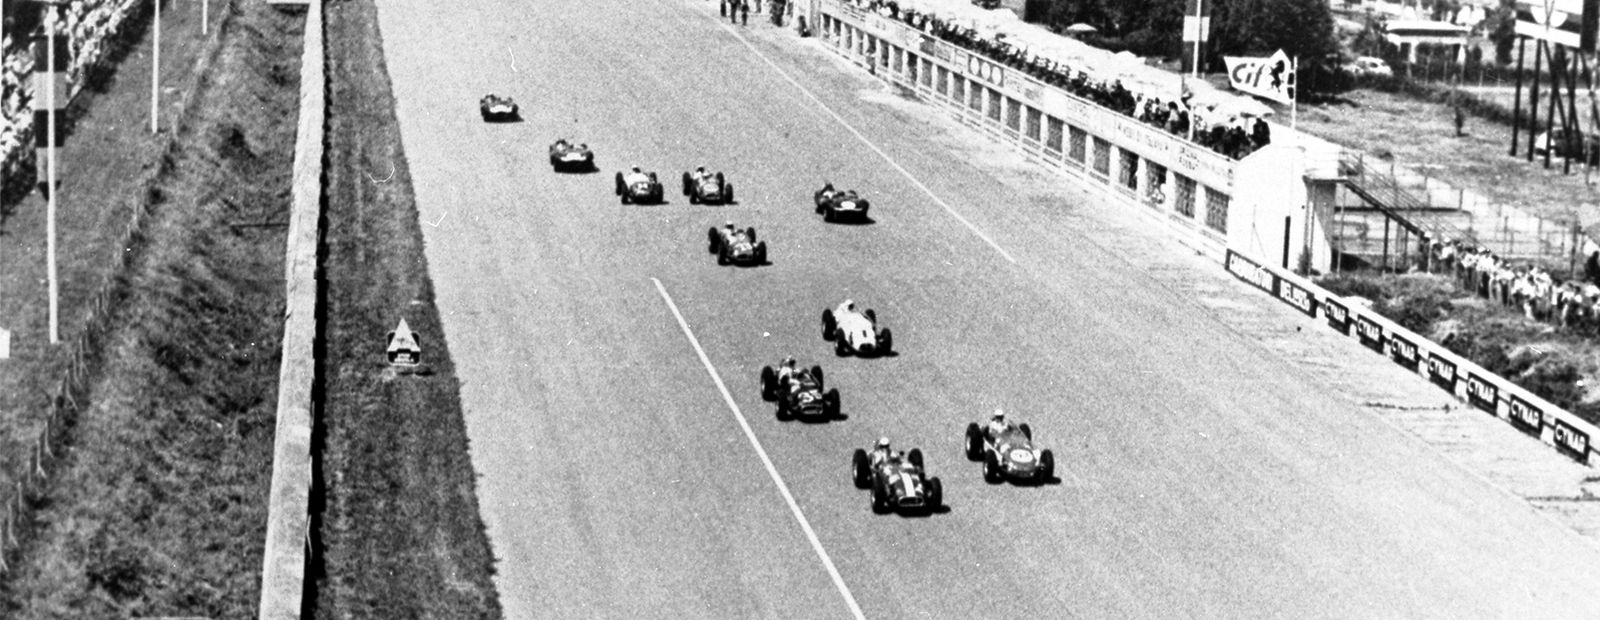 The history of Indy 500 & F1 championships